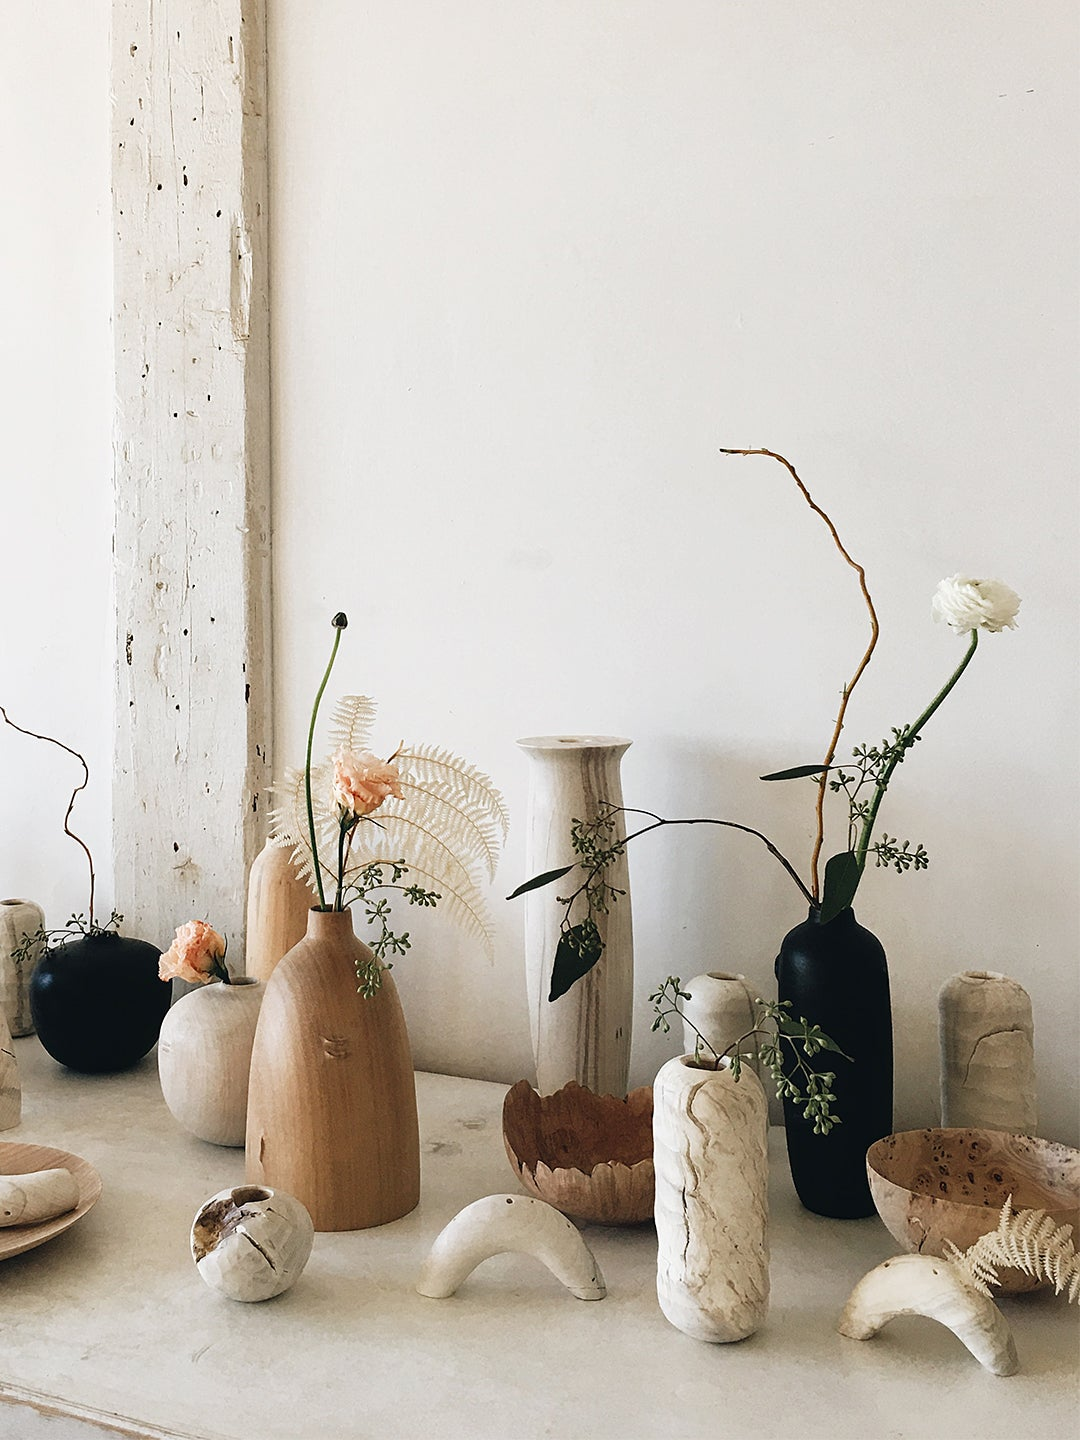 vases and other sculptural objects on a table